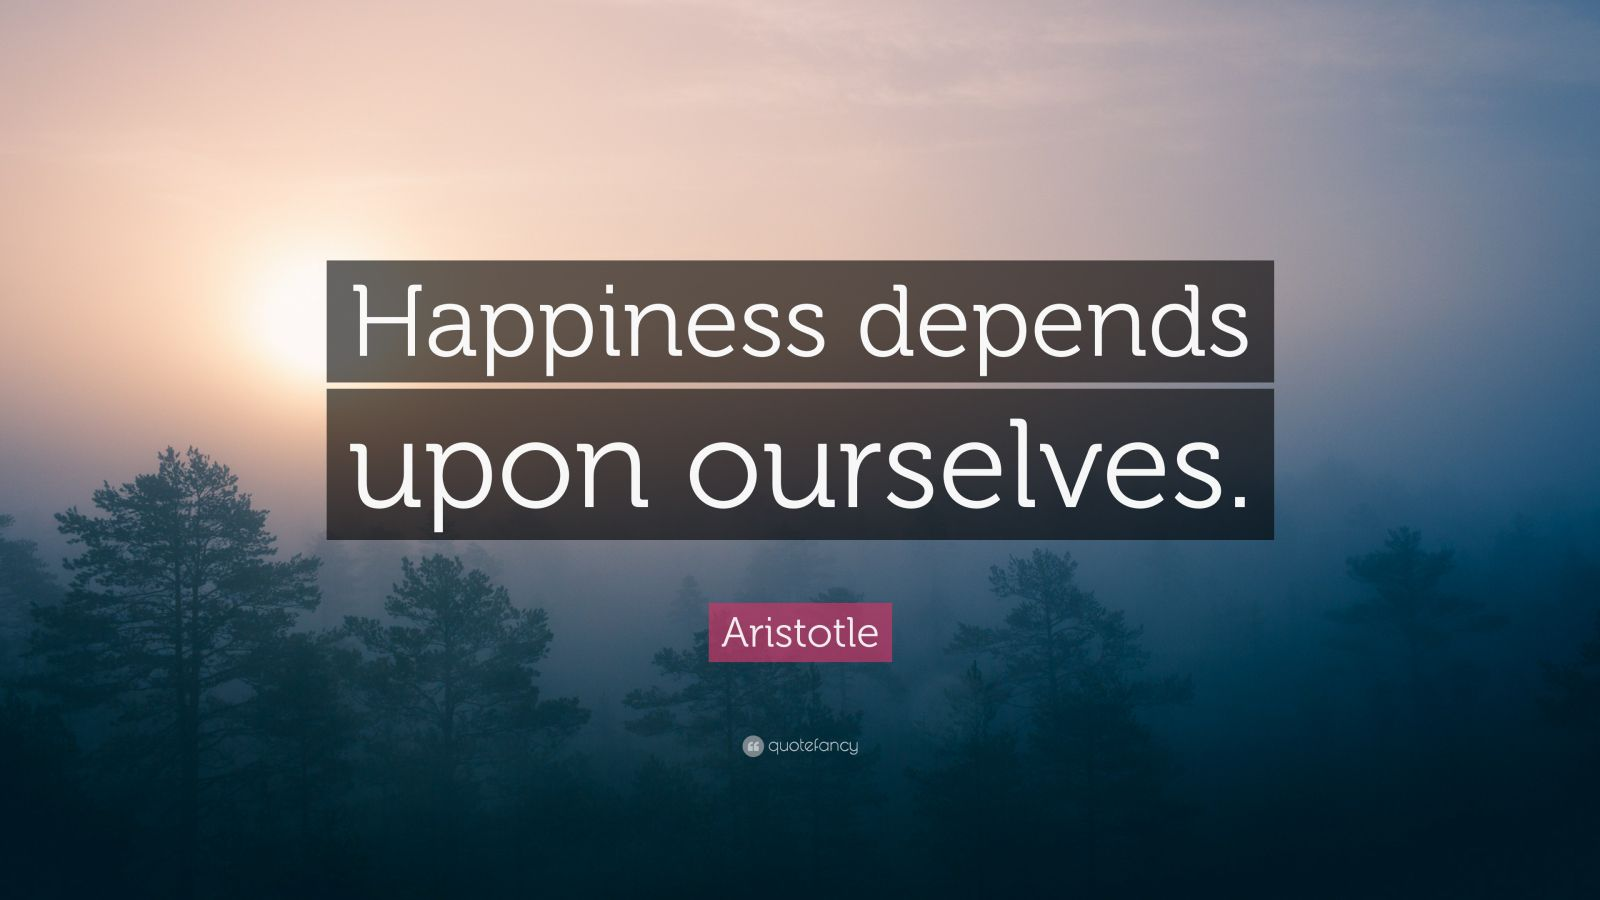 essay on happiness depends upon ourselves What does the phrase happiness depends upon ourselves mean why do we always depend on other people to get happiness happiness commenses with ourselves.